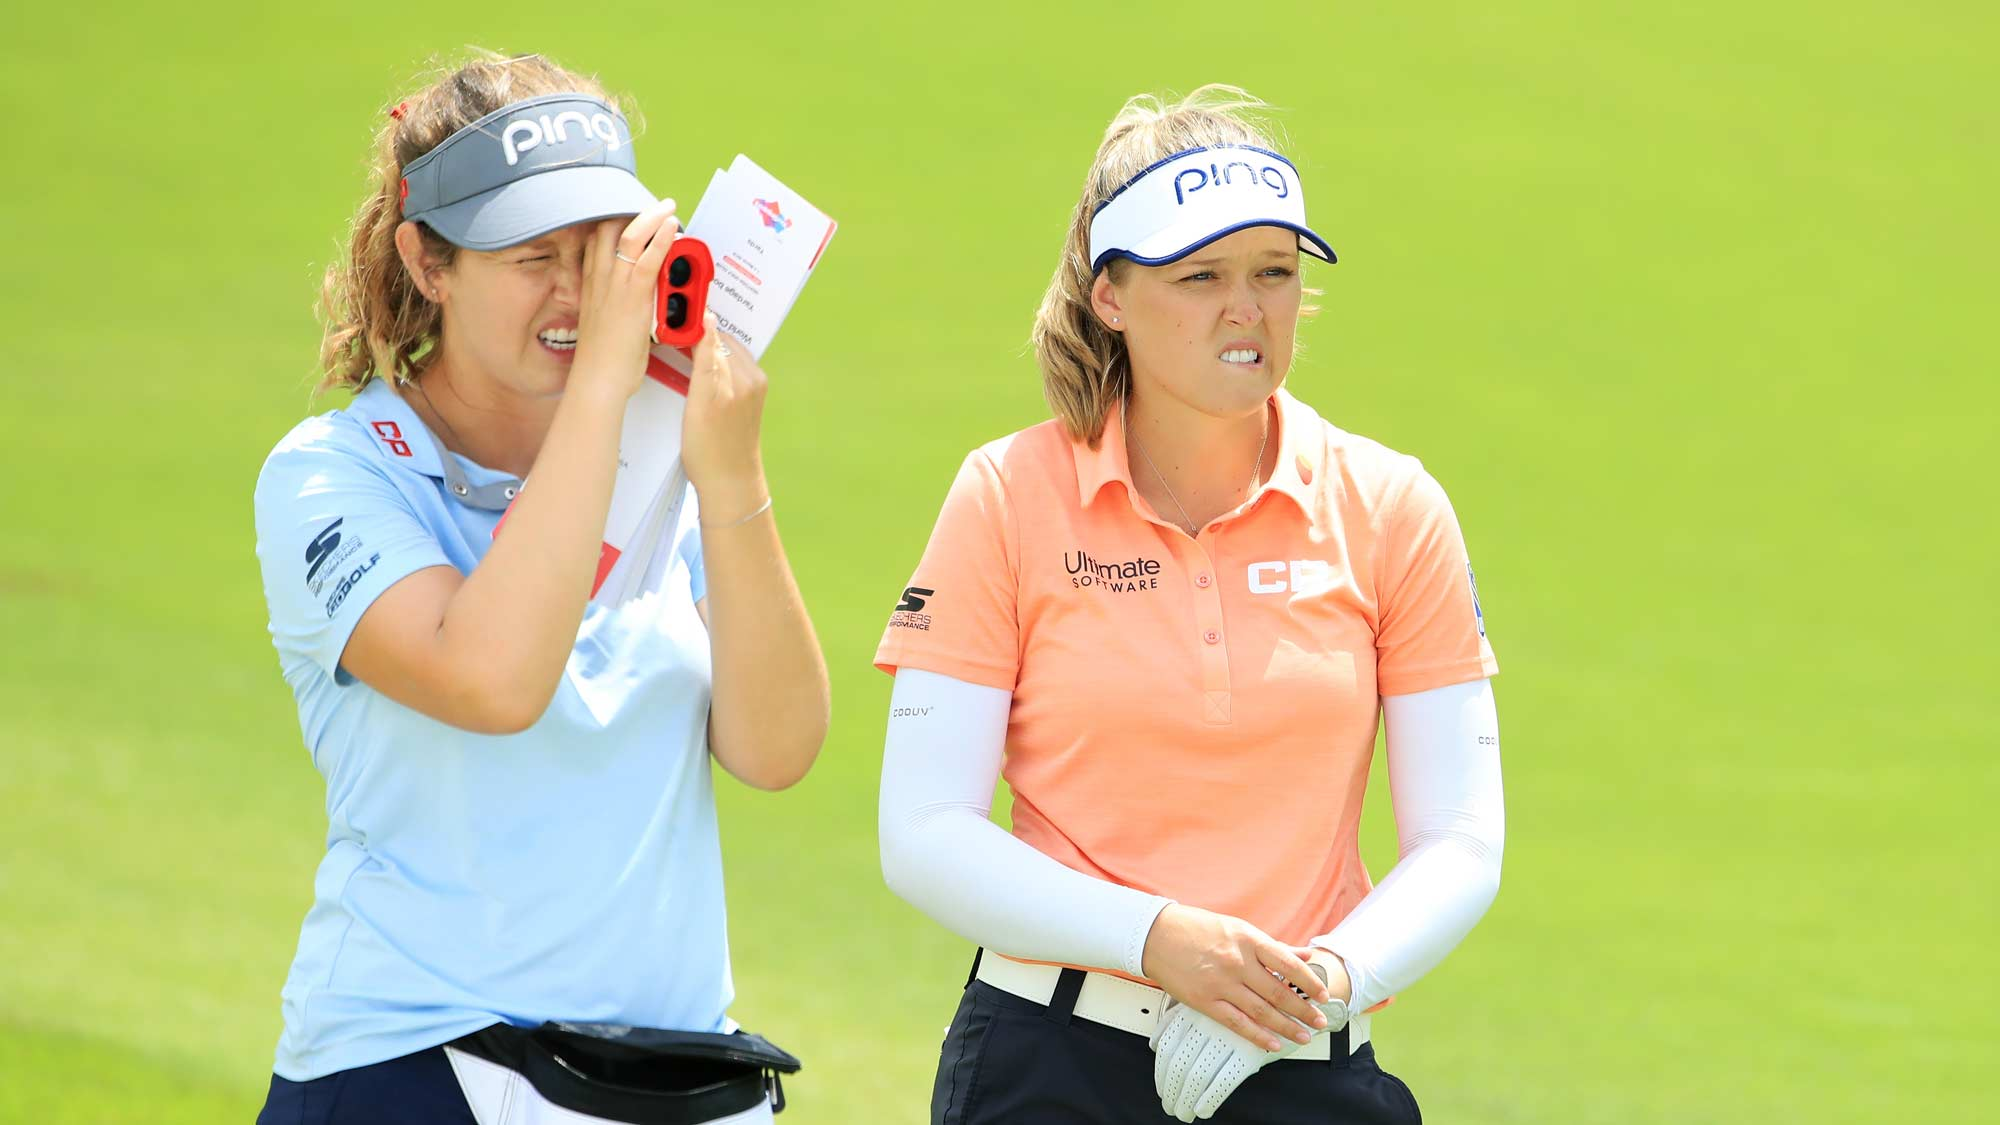 Brooke Henderson of Canada and her sister, caddie Brittany Henderson look on during a practice round prior to the HSBC Women's World Championship at Sentosa Golf Club on February 26, 2019 in Singapore.